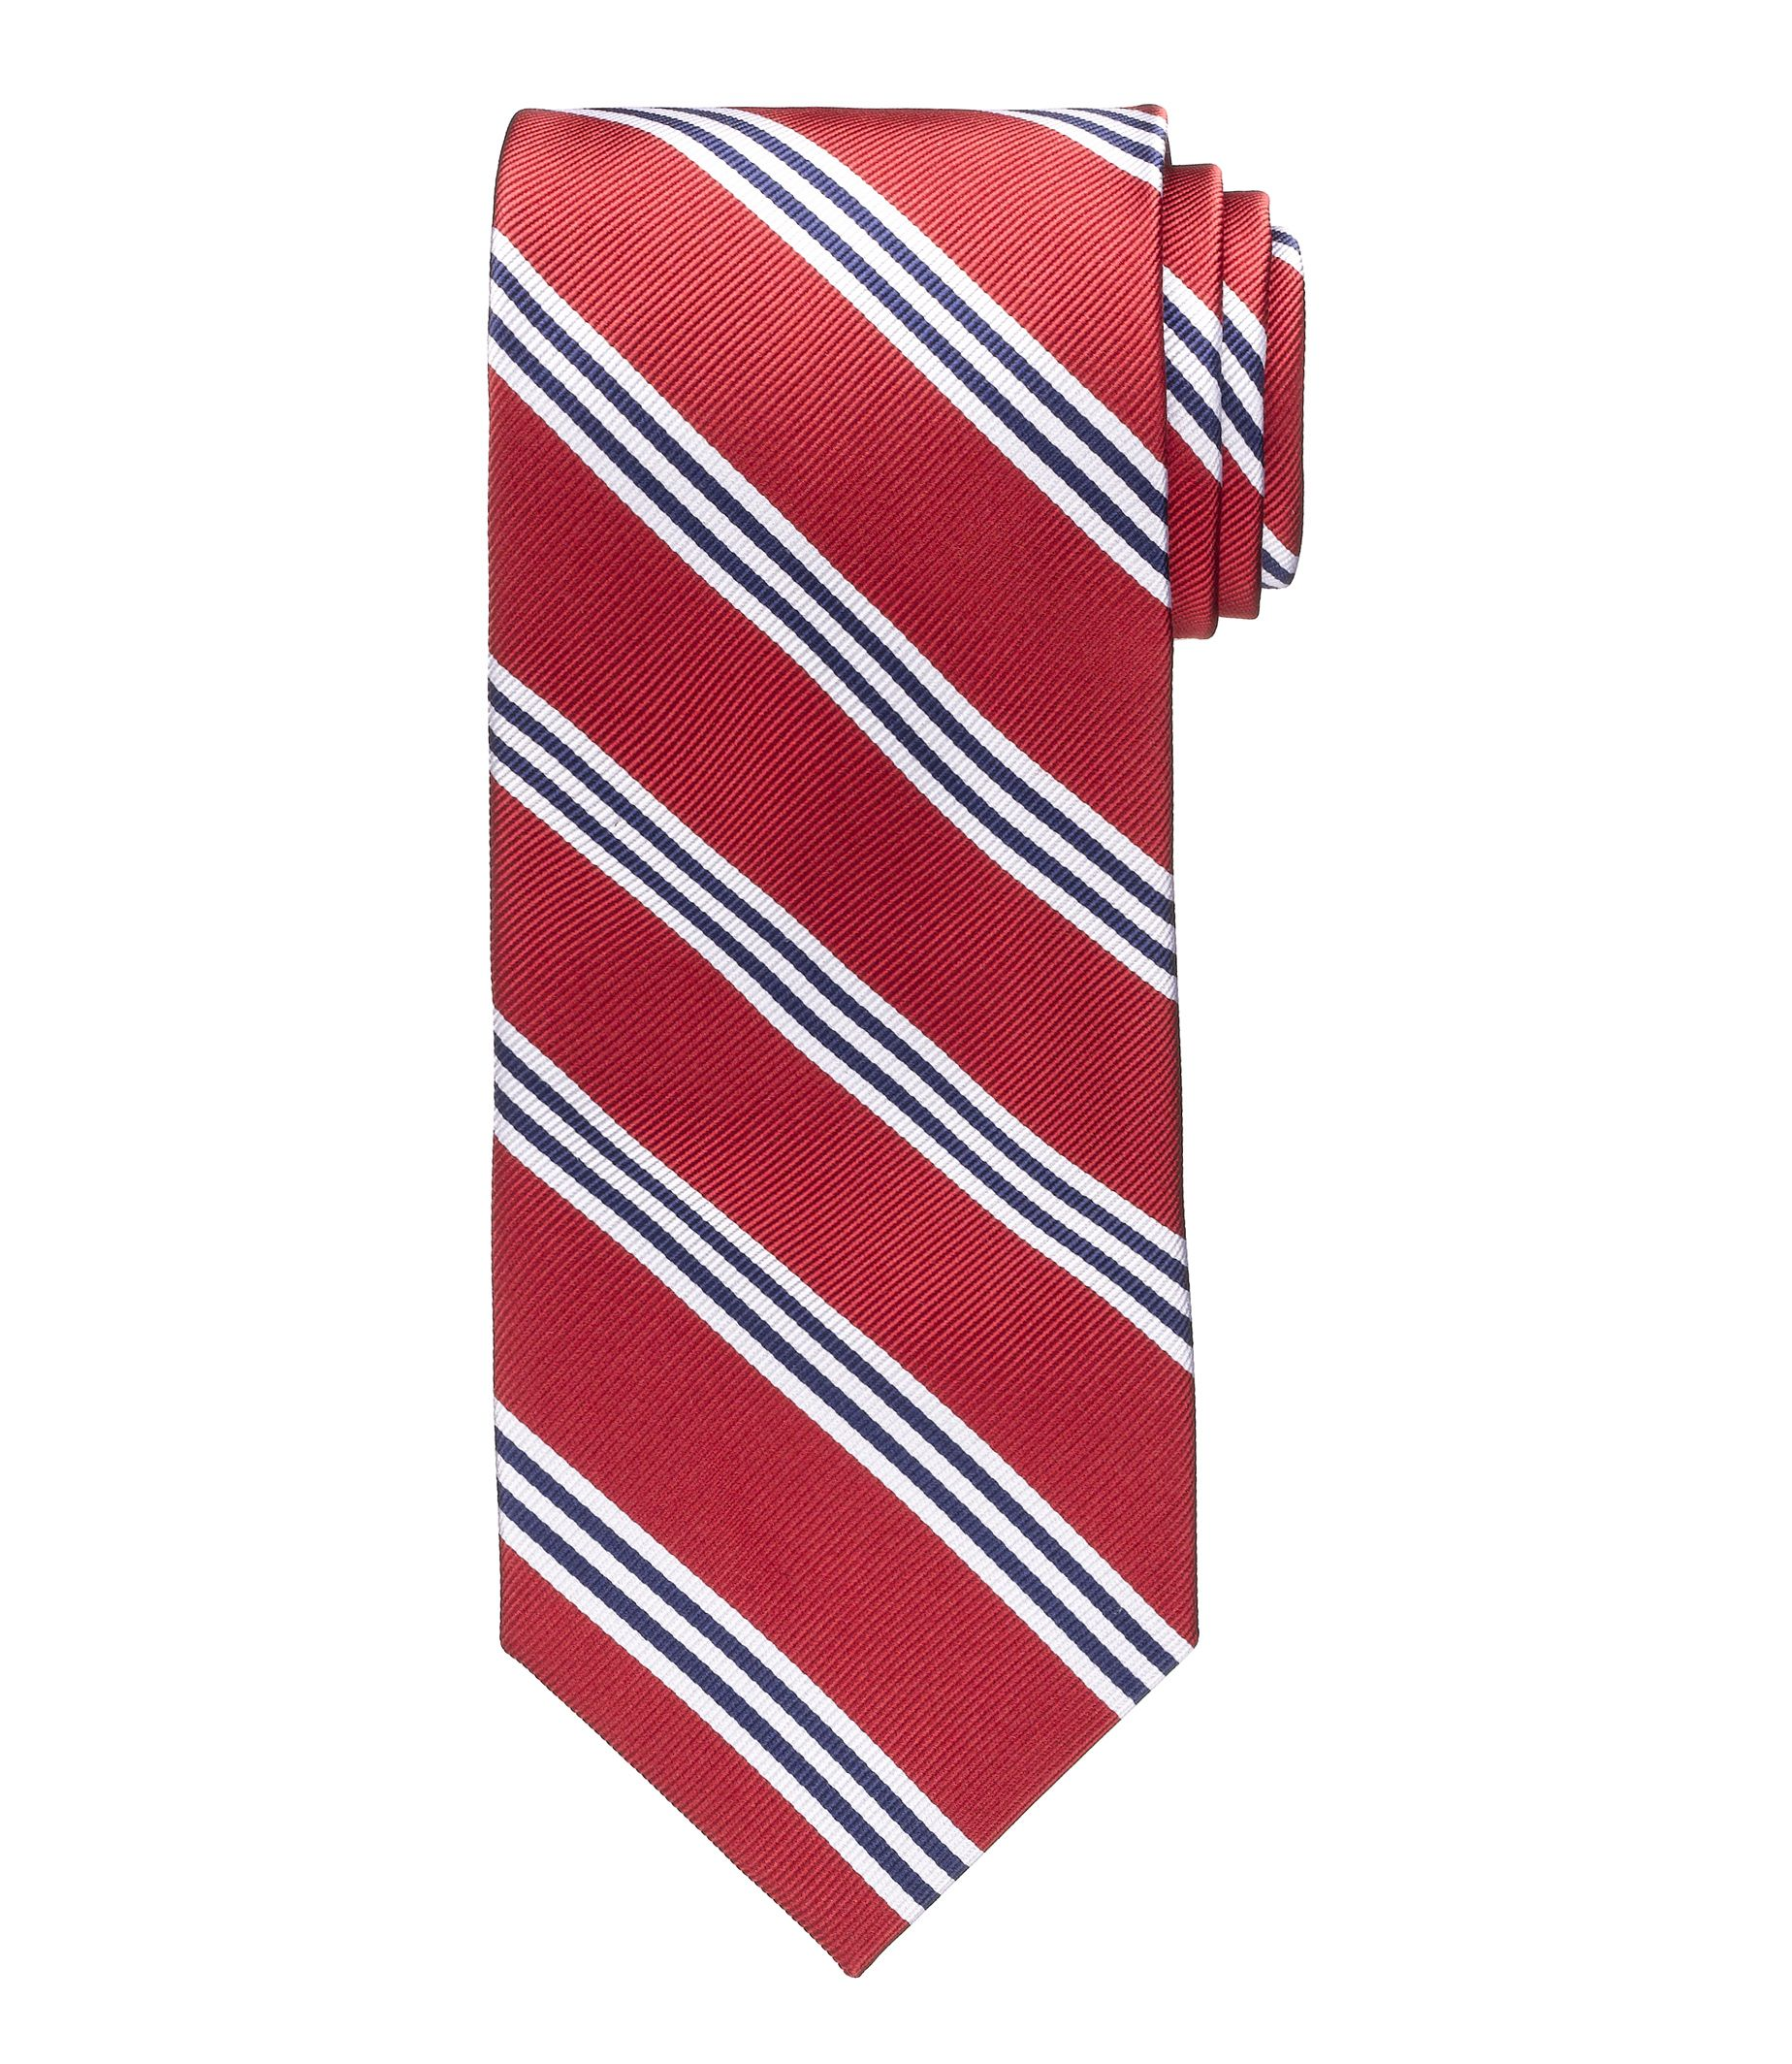 Tie bar coupon code